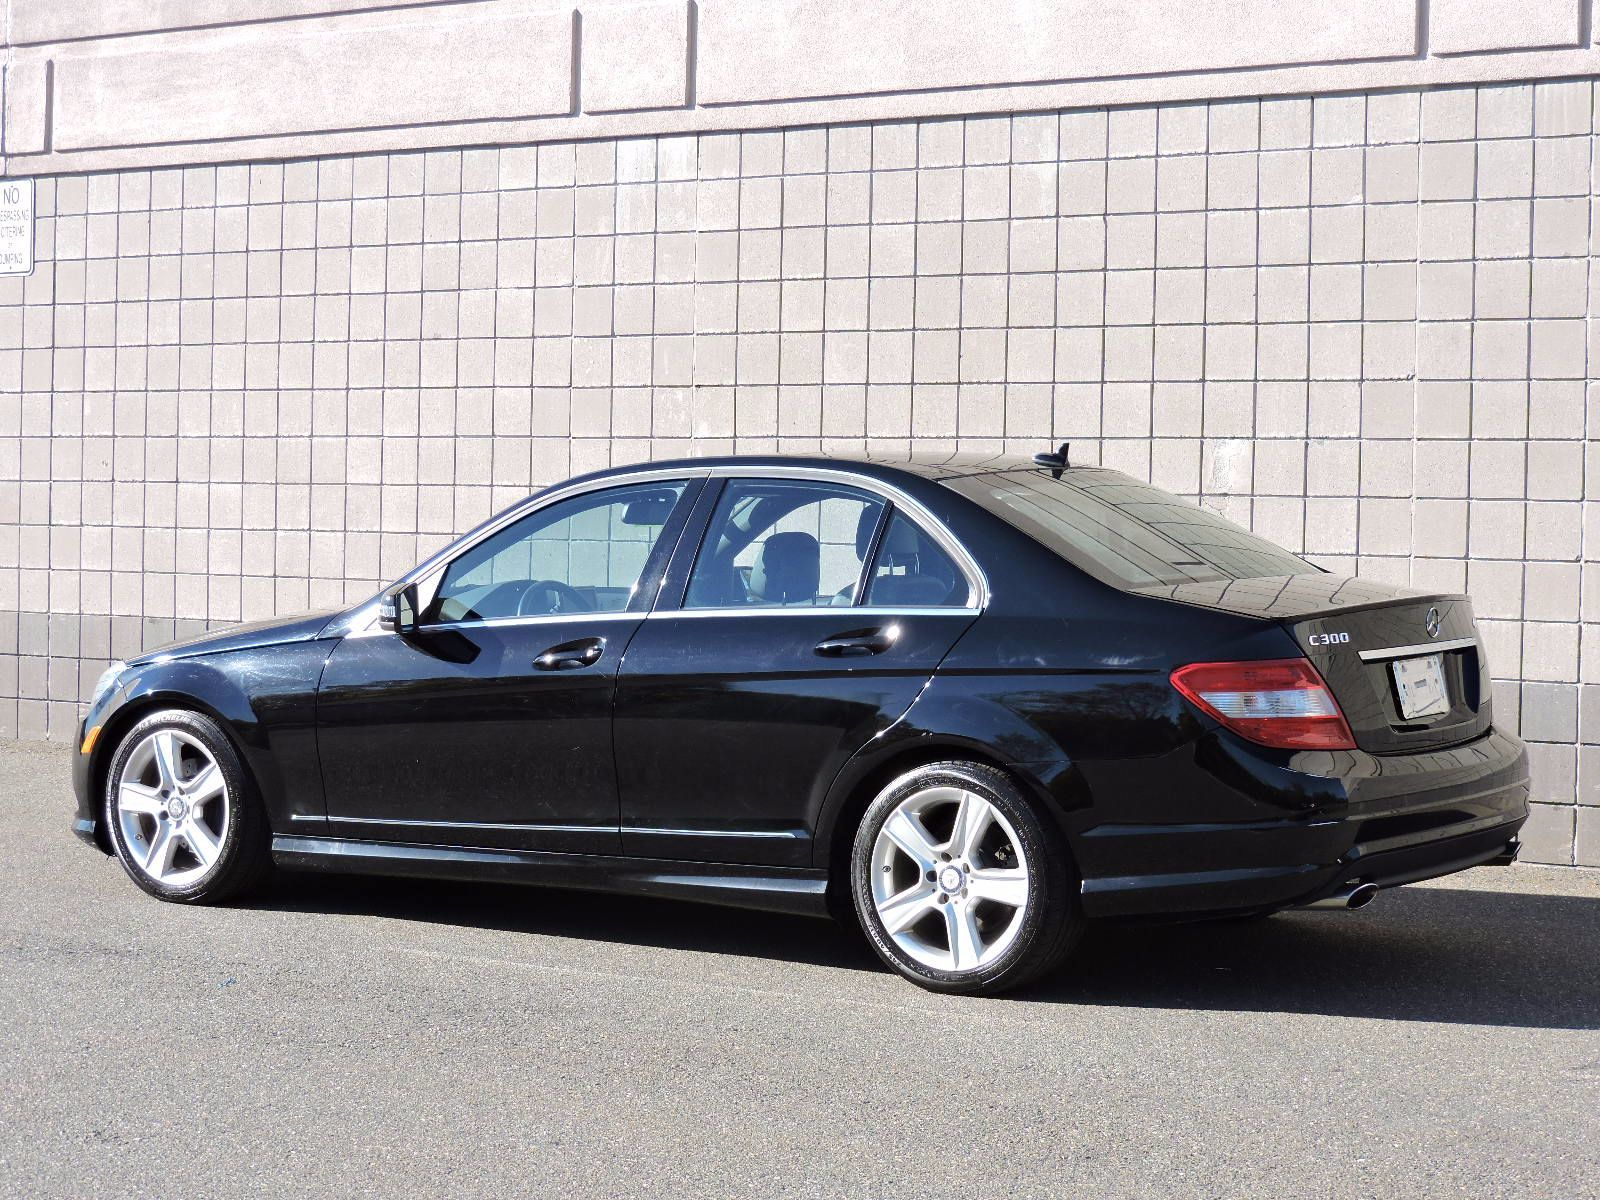 Used 2011 mercedes benz c300 c300 sport at saugus auto mall for Mercedes benz c300 sport 4matic